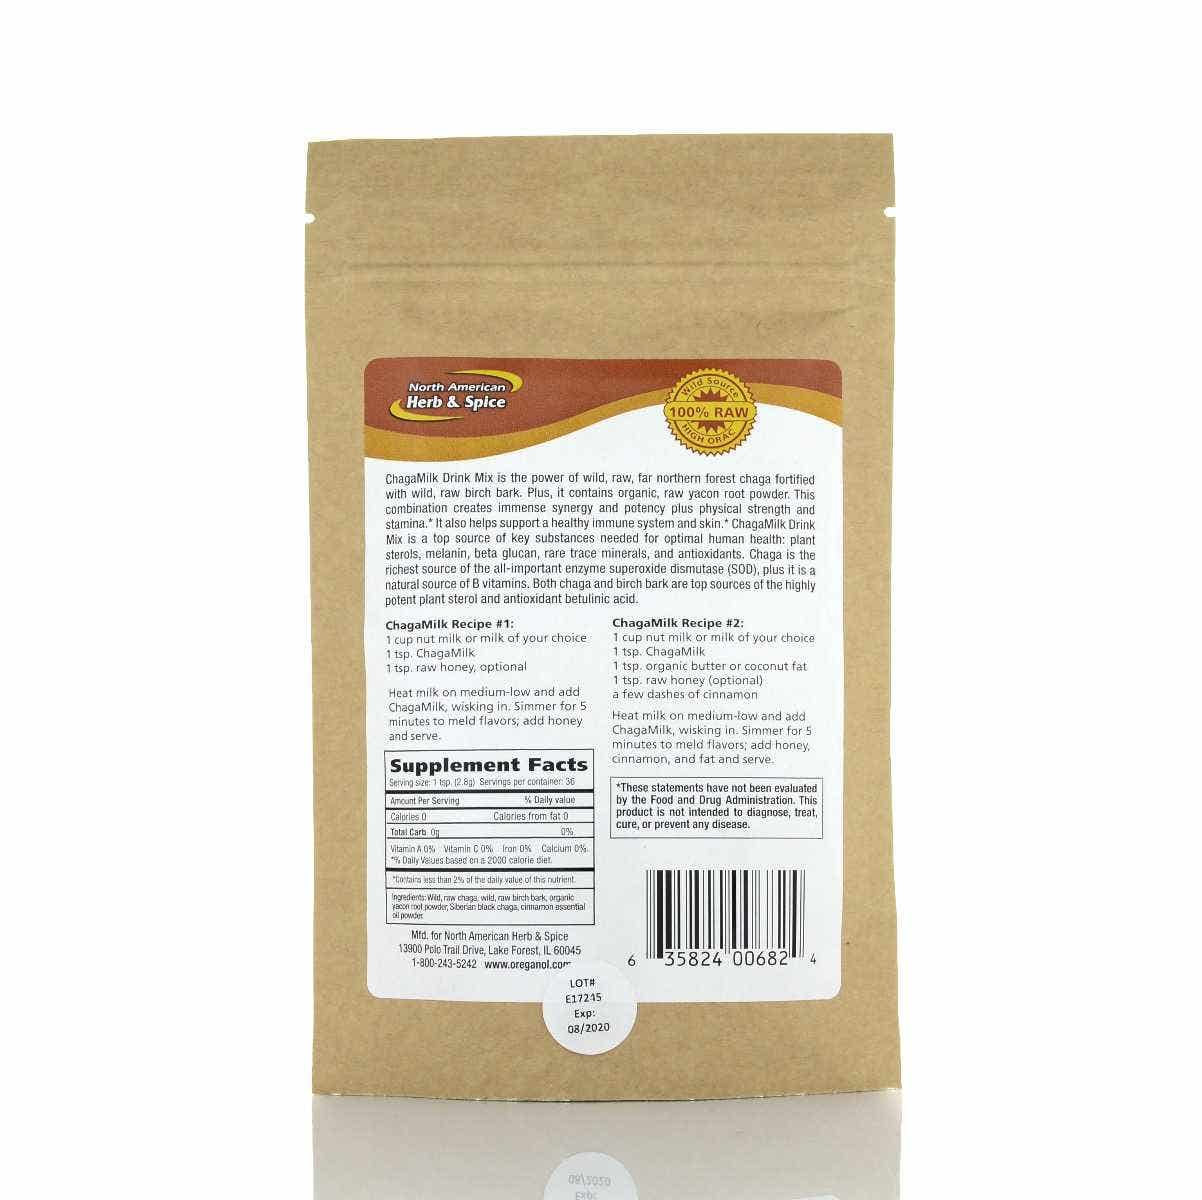 North American Herb & Spice ChagaMilk Mix, 100g